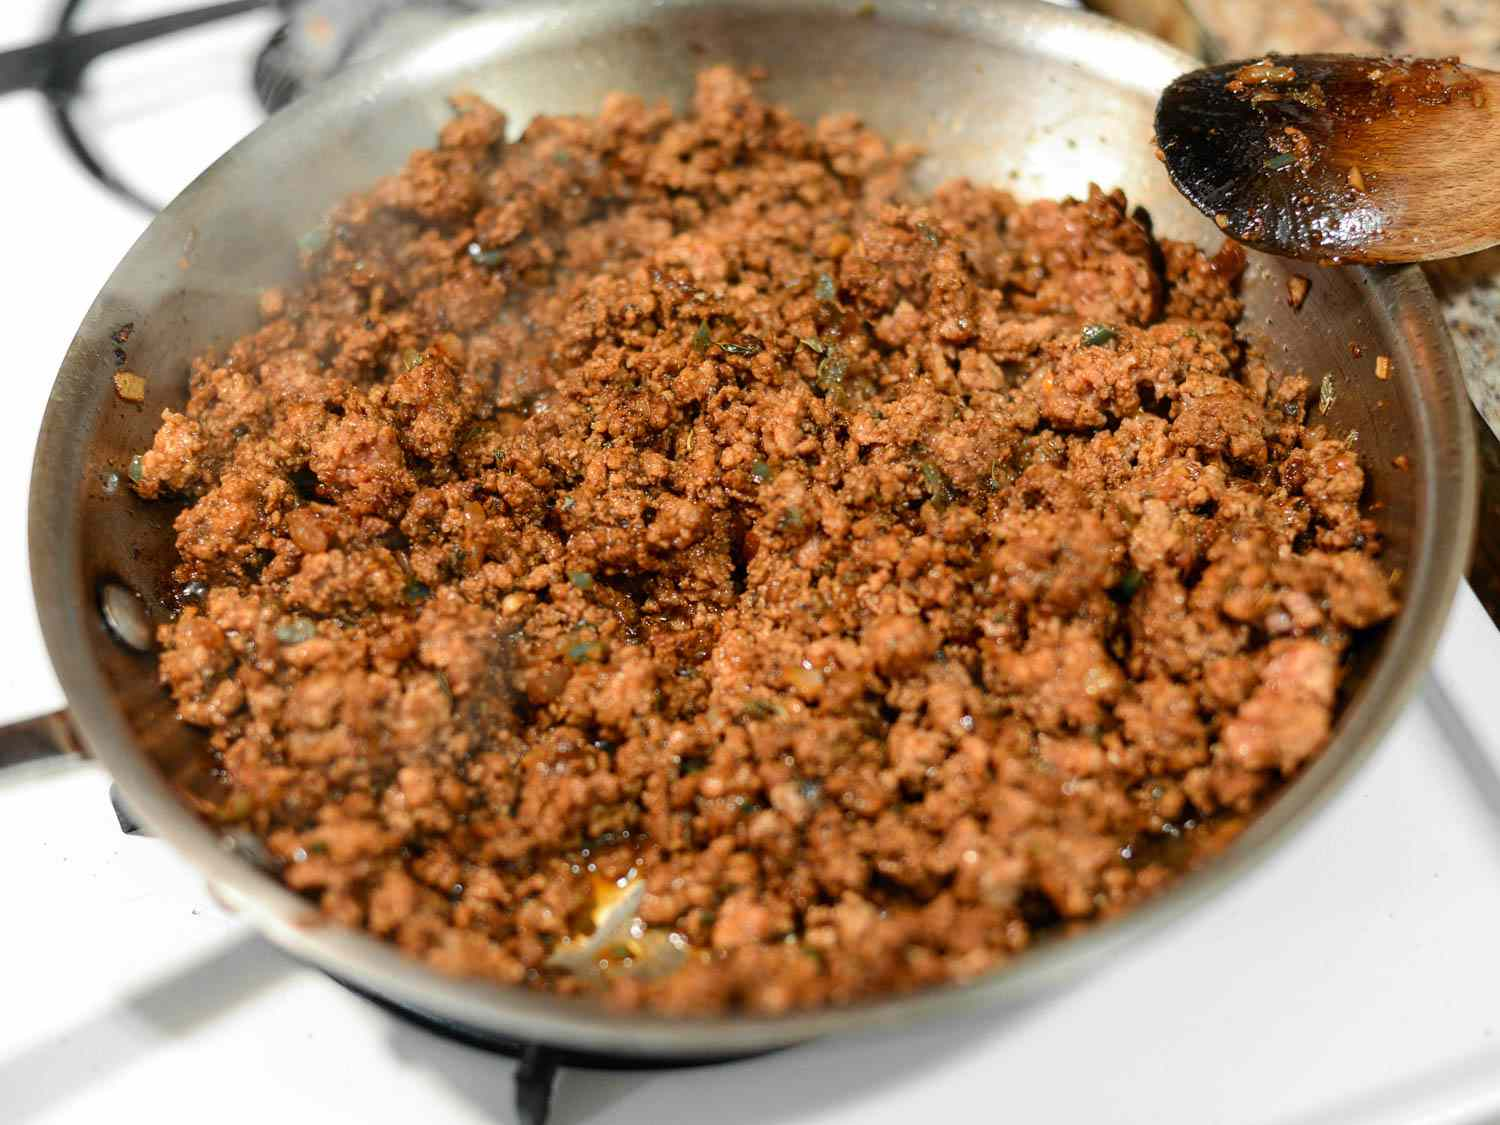 20150414-puffy-tacos-filling-browned-beef-joshua-bousel.jpg